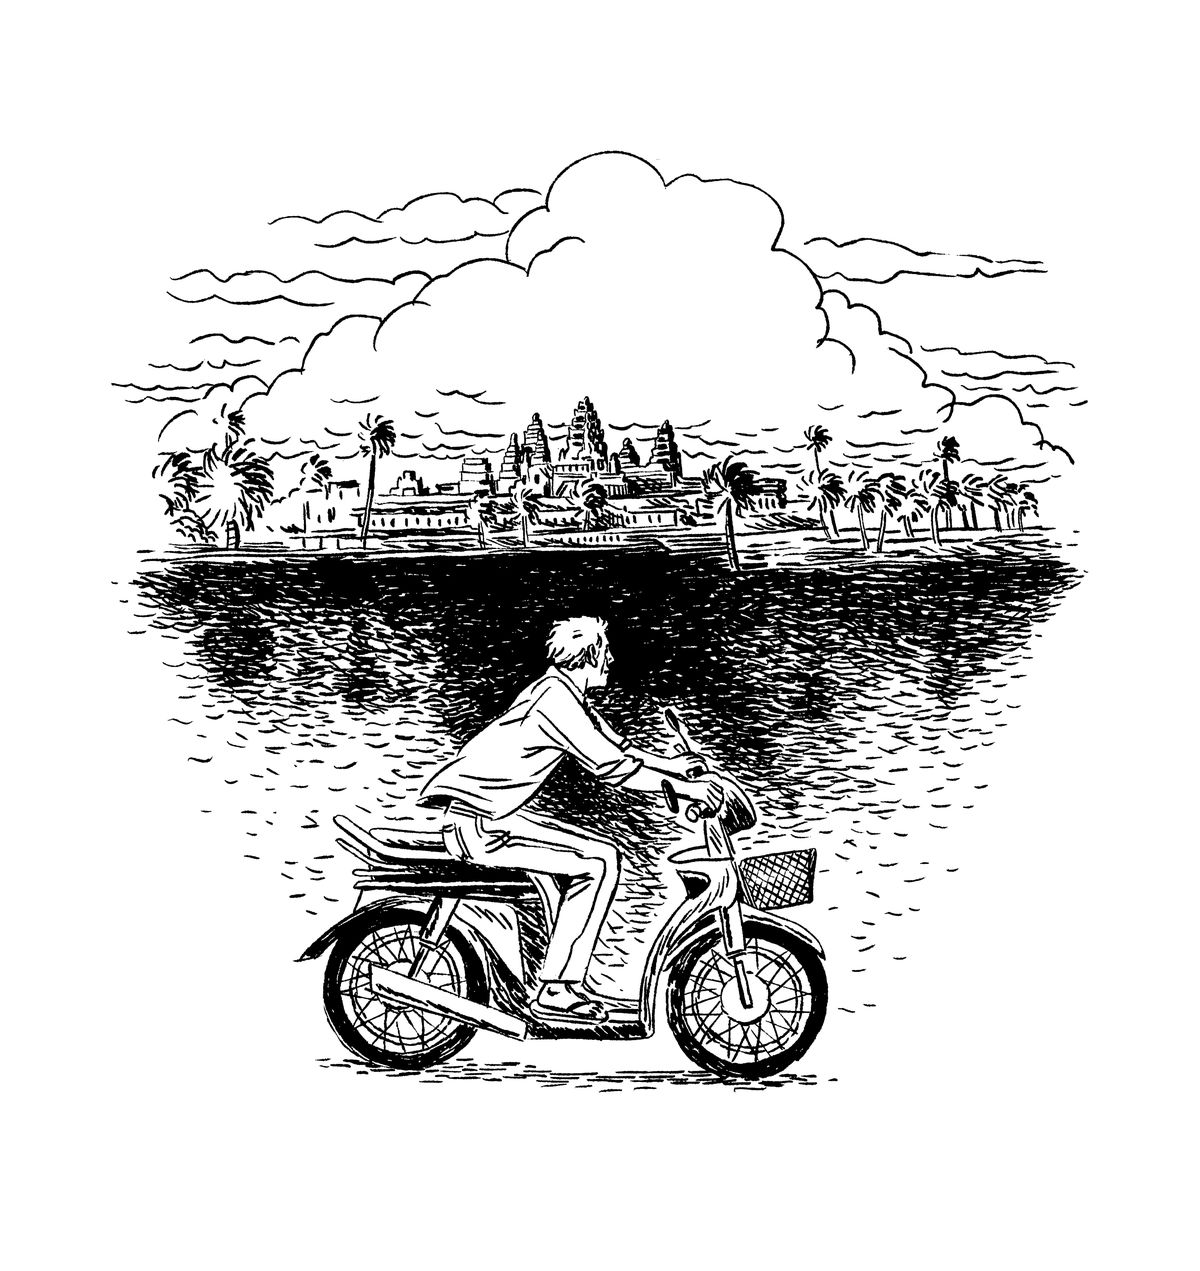 A man rides a motor bike with buildings and palm trees far off in the distance